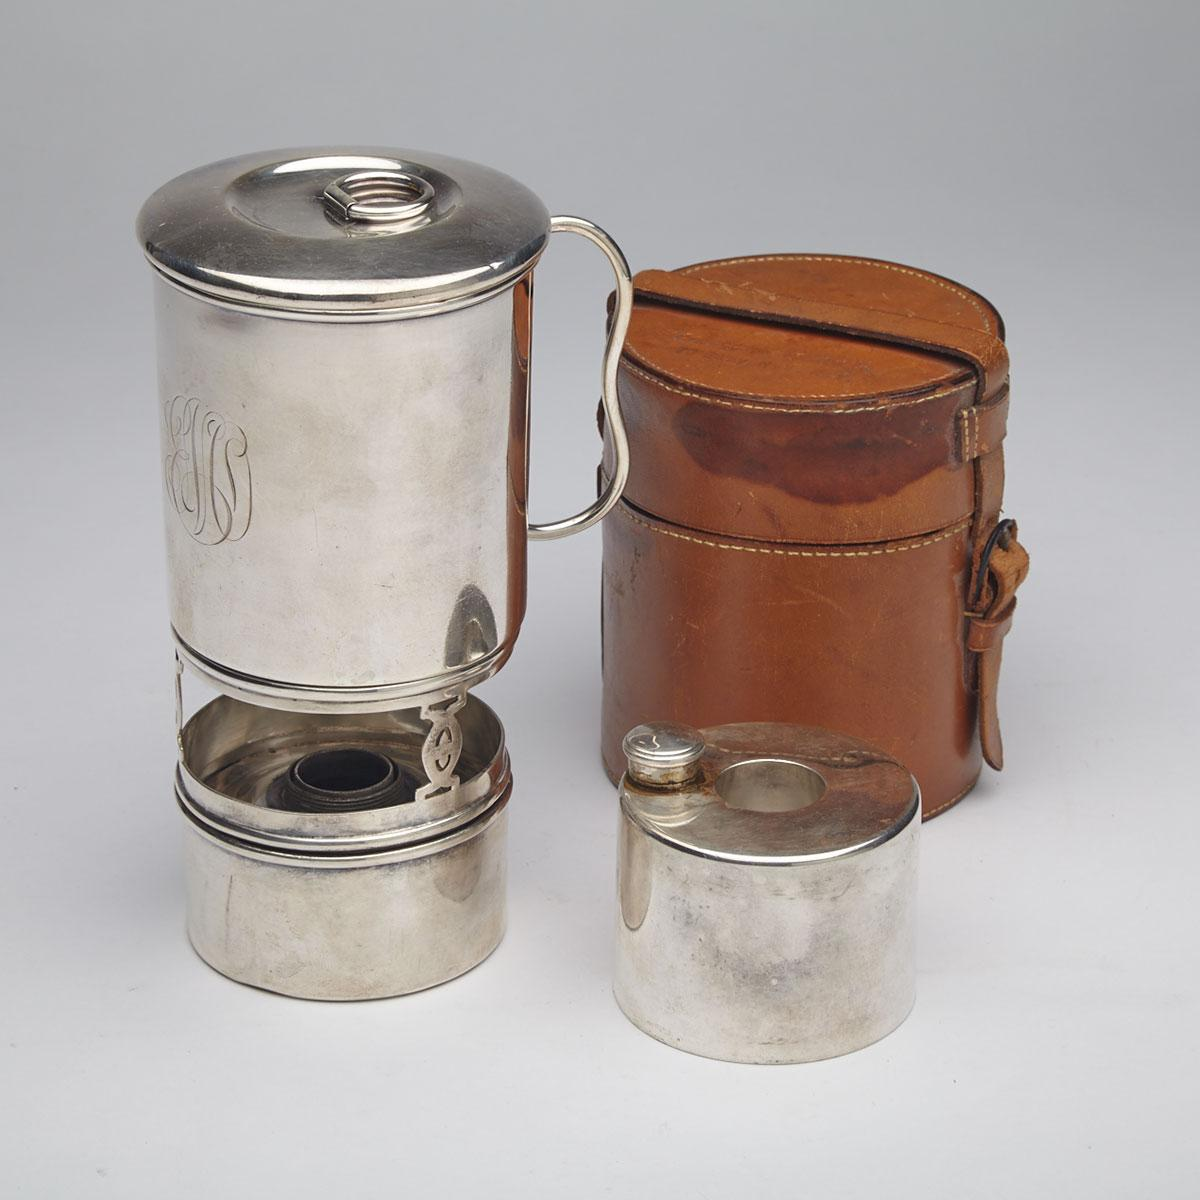 Tiffany & Co. Silver Plated Travel mug set, early 20th century